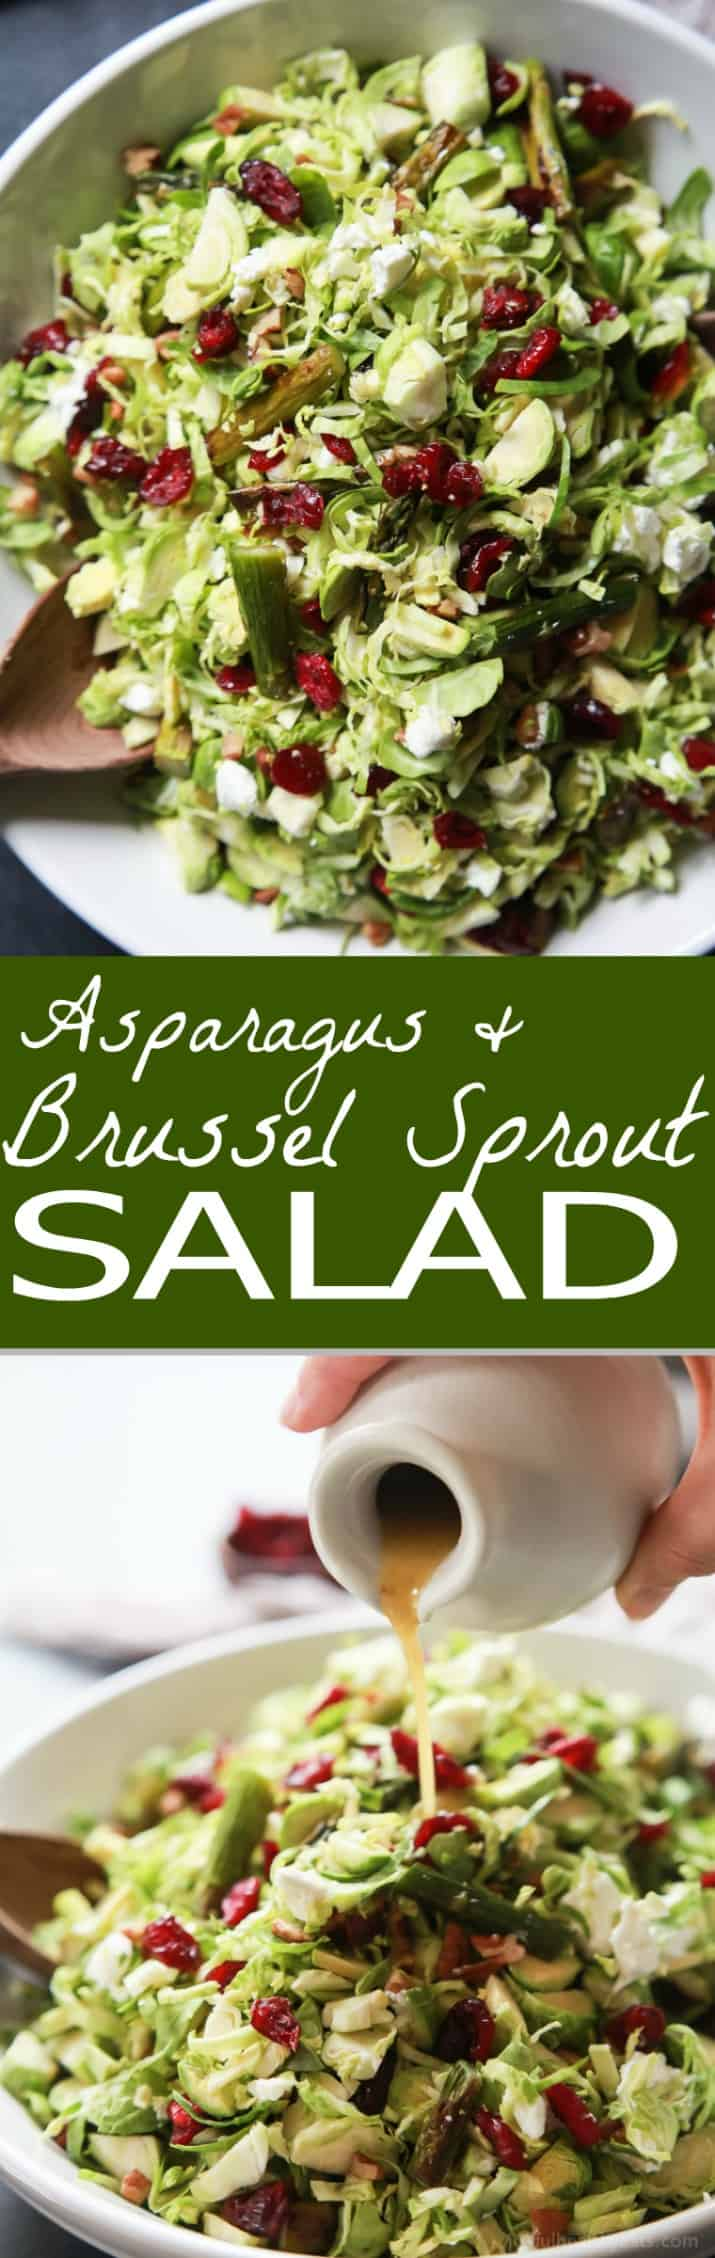 Asparagus & Brussel Sprout Salad topped with Honey Dijon Dressing - a tasty, healthy, easy to make salad done in 30 minutes that's sure to be a favorite! Perfect for the holidays or a fresh start to the new year at only 162 calories! | joyfulhealthyeats.com #glutenfree #vegetarian